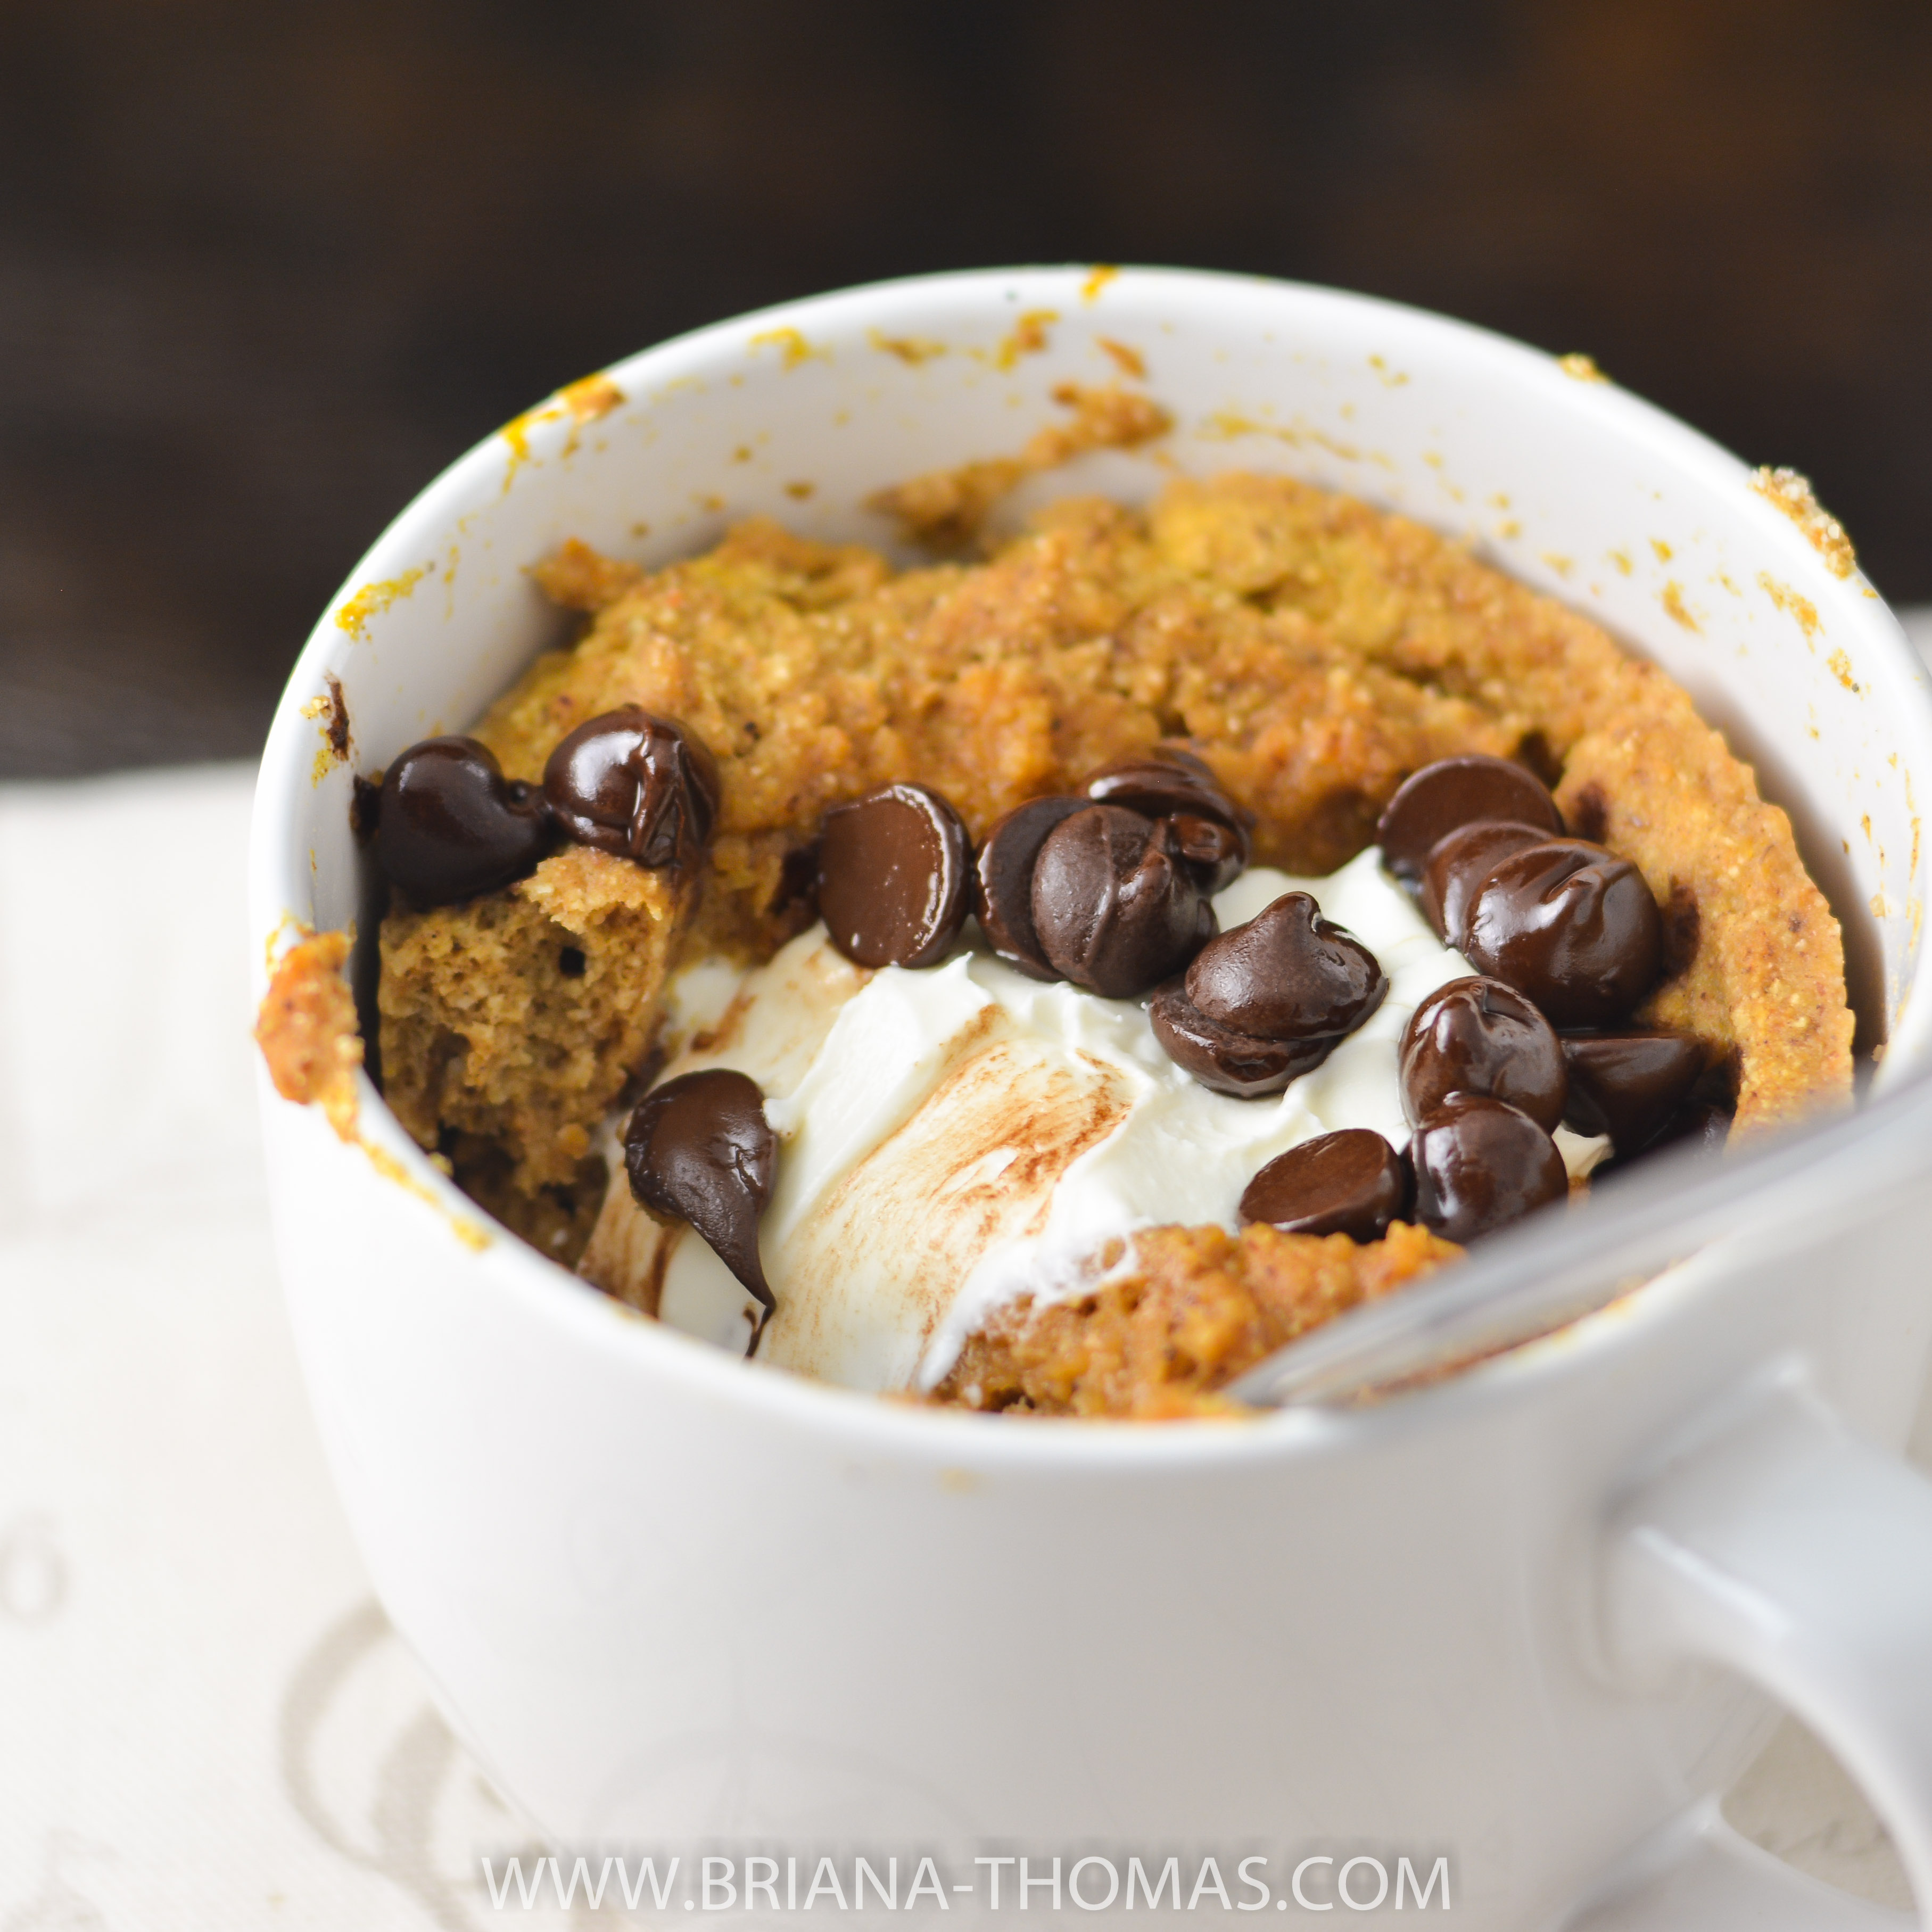 This Pumpkin Cream Cheese Chocolate Chip Mug Cake for One is so easy to make! THM S, low carb, sugar free, gluten free, nut free